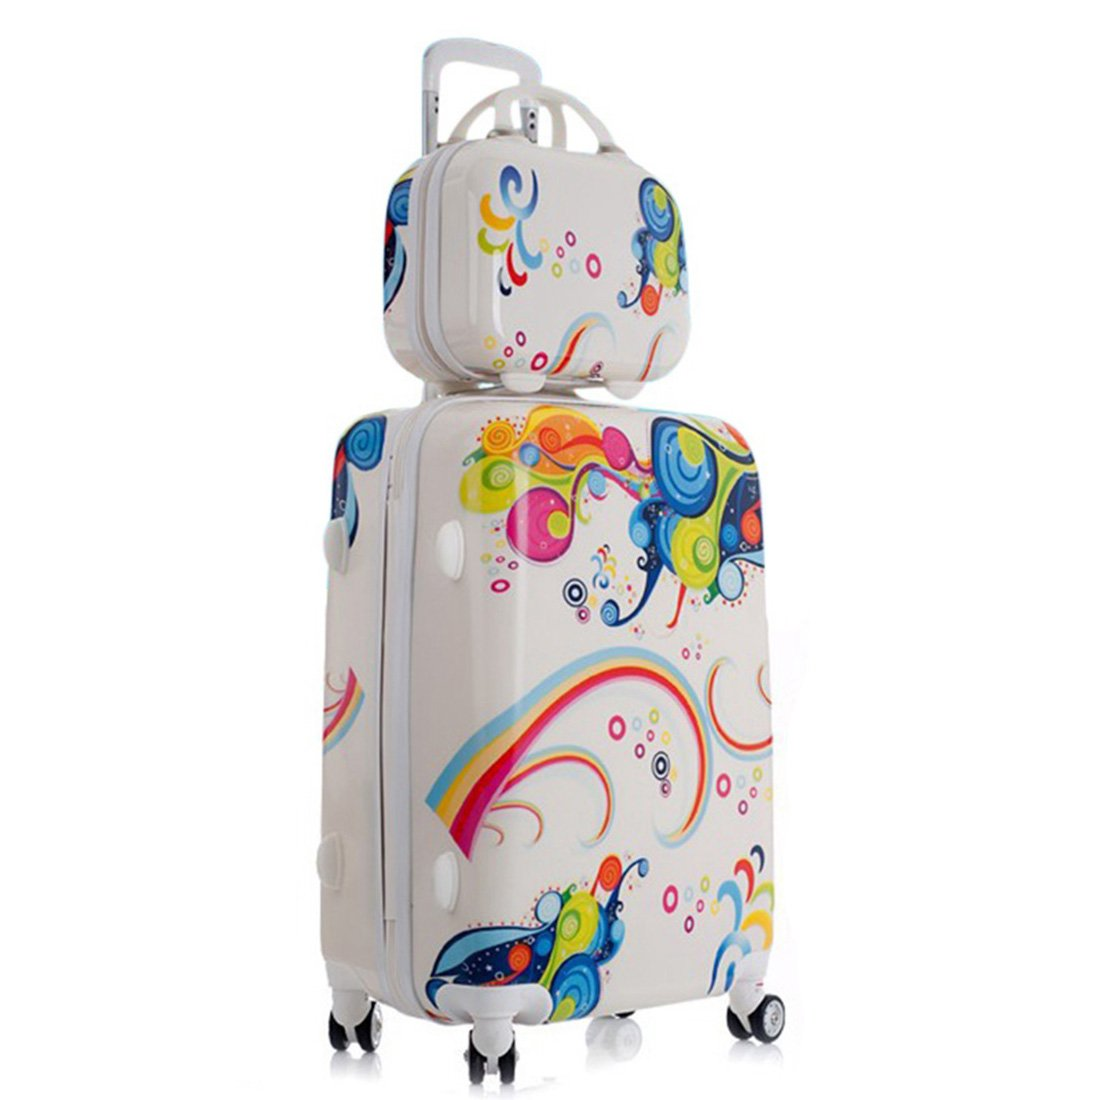 20 Inches 2PCS Children's Suitcases Aluminum Alloy Pull Rod Rolling Luggage Sets Waterproof Child Suitcases and Travel Bags 4 Wheels